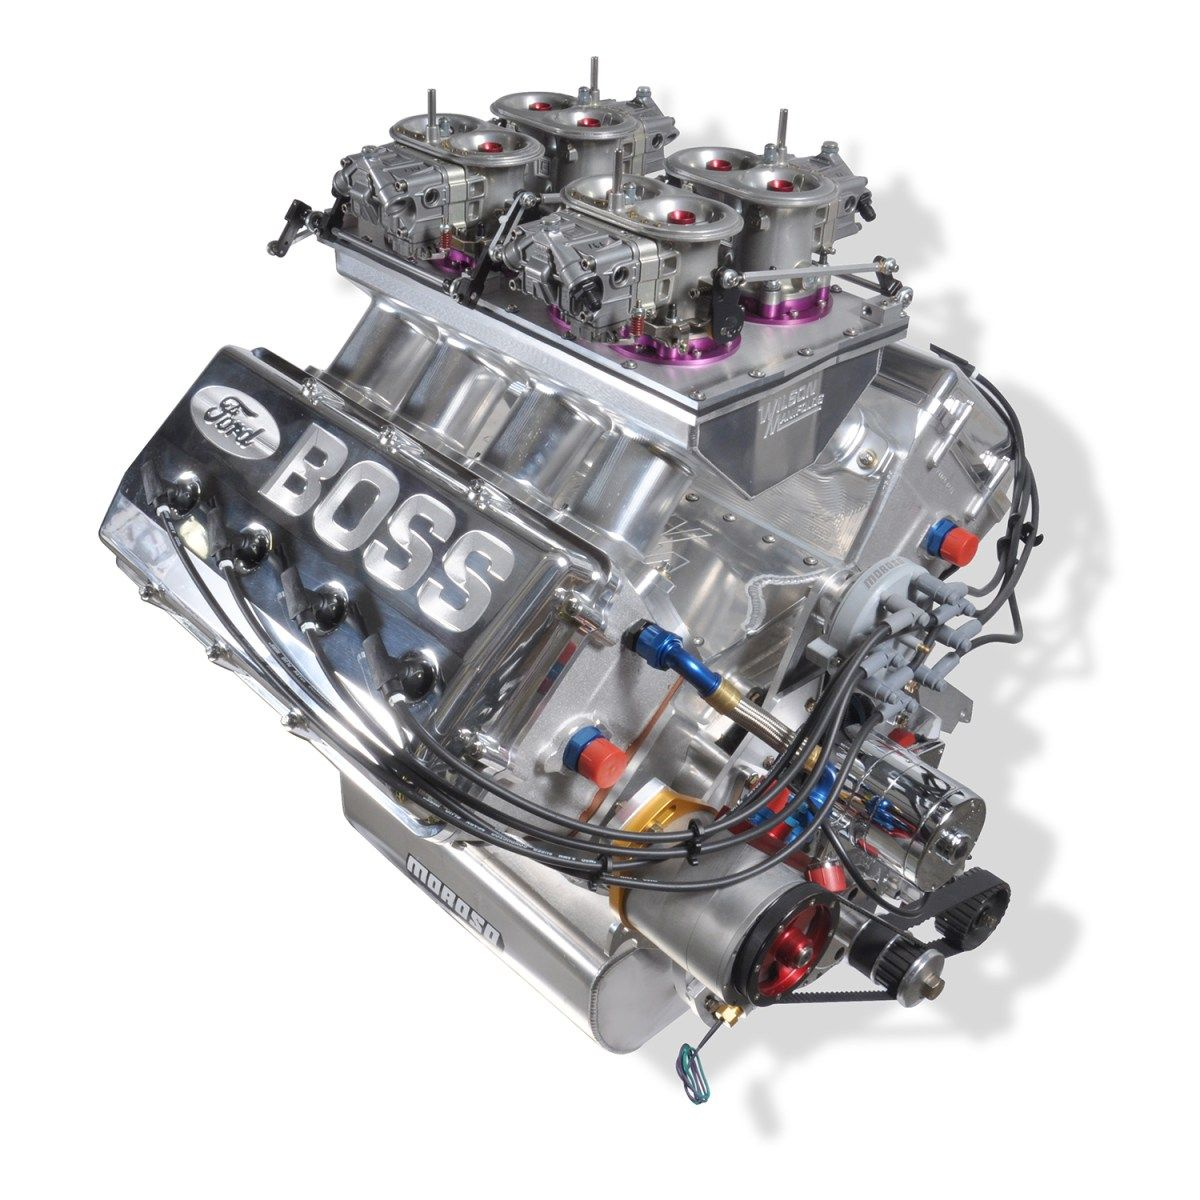 Kaase 830 C I Pro Stock Ford Ford Racing Engines Ford Racing Ford